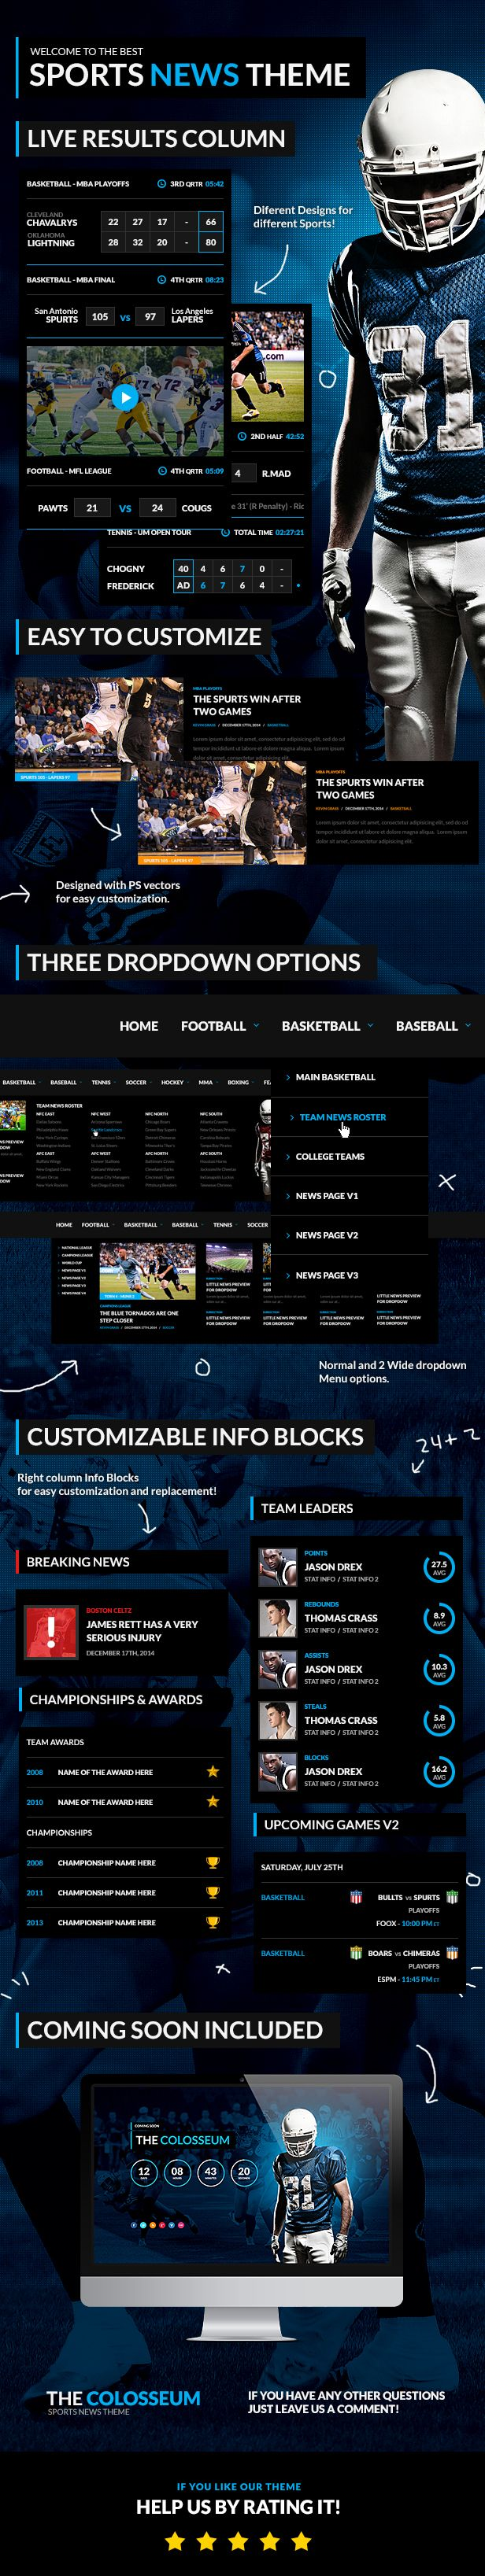 The Colosseum - Sports Magazine PSD Template - 6